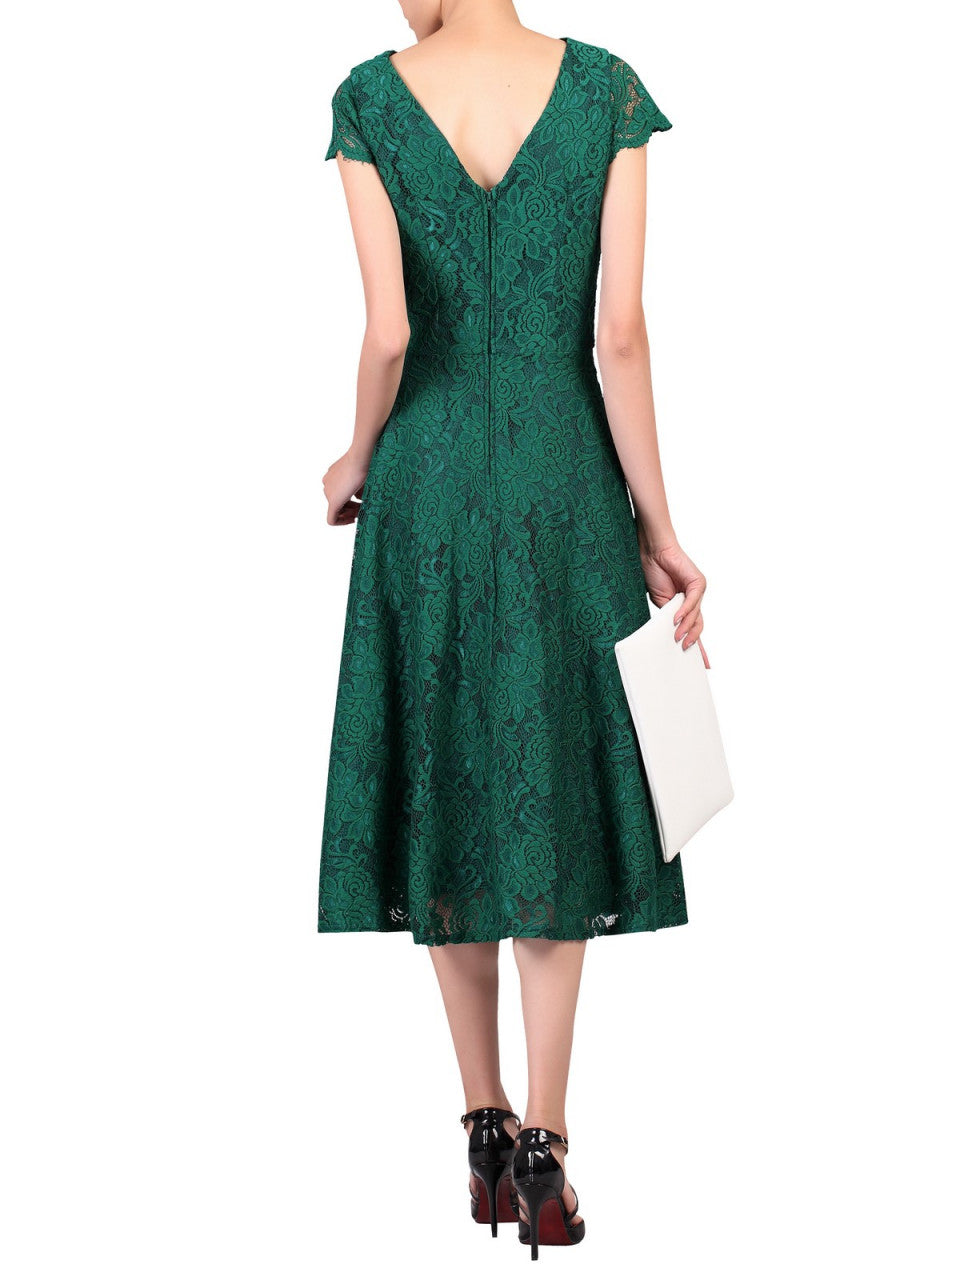 1cb94bd56 ... Load image into Gallery viewer, Jolie Moi Cap Sleeve Lace Midi Dress,  Green ...